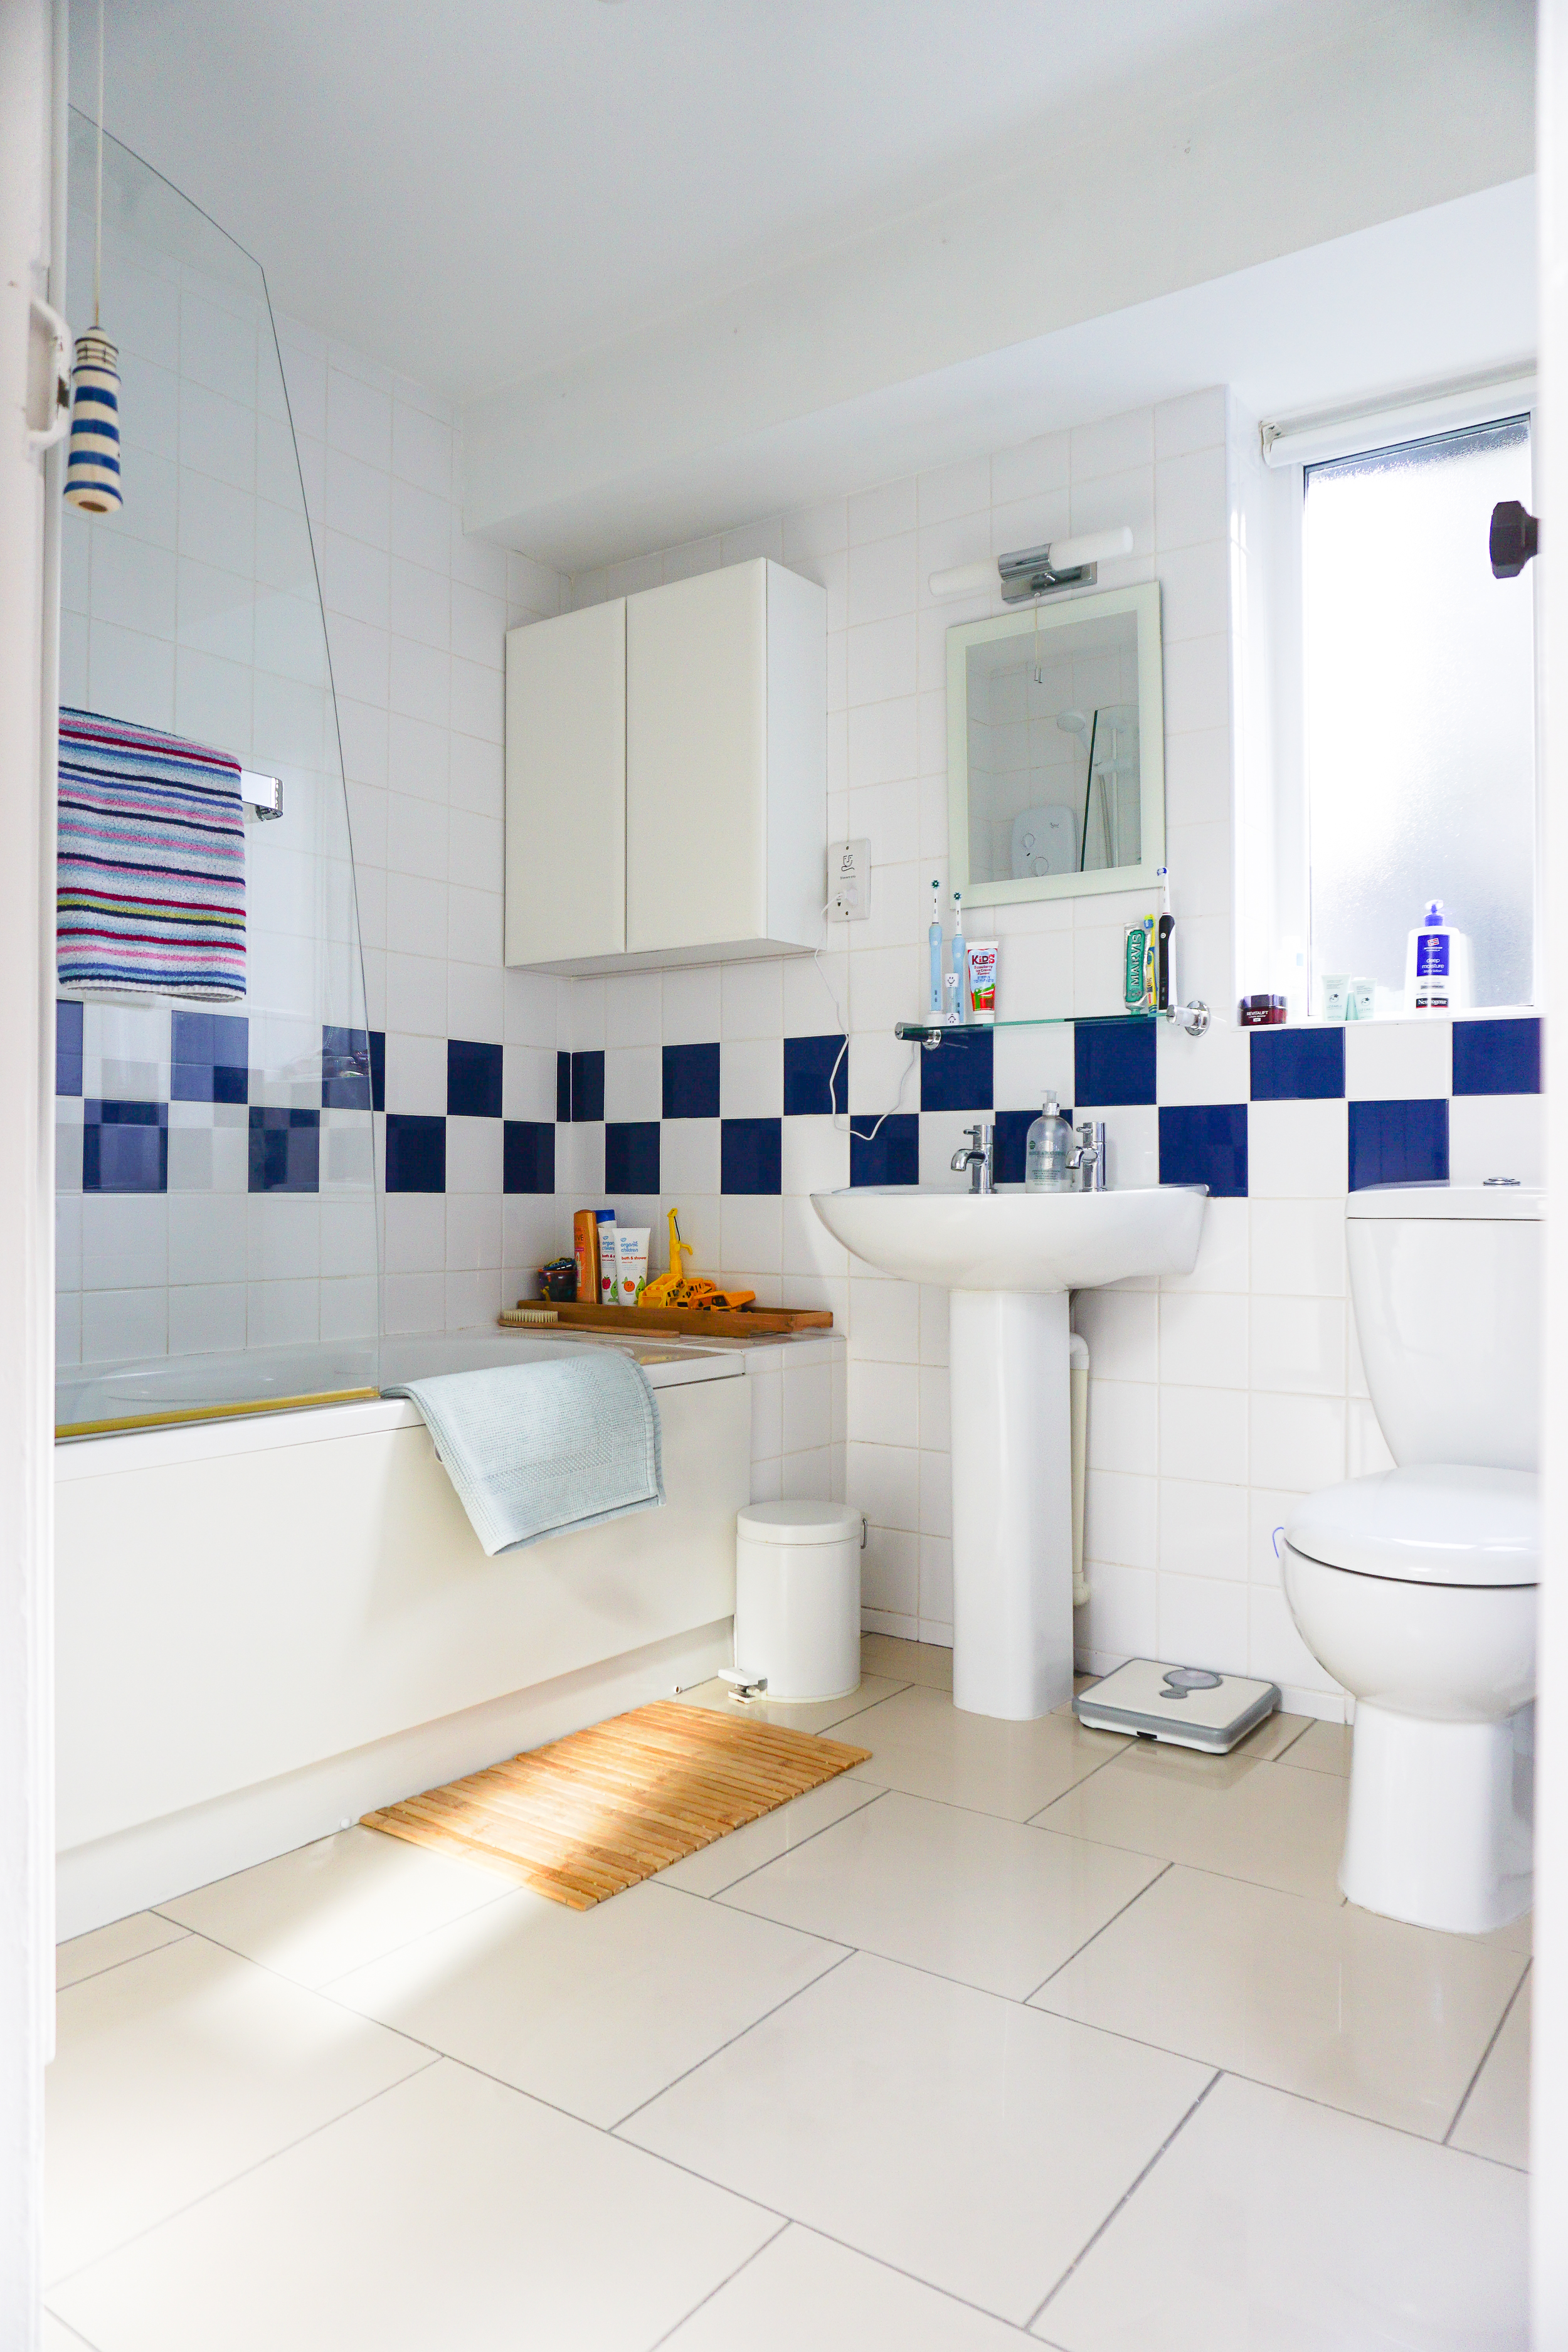 Bathroom renovation ... the 'before' pictures